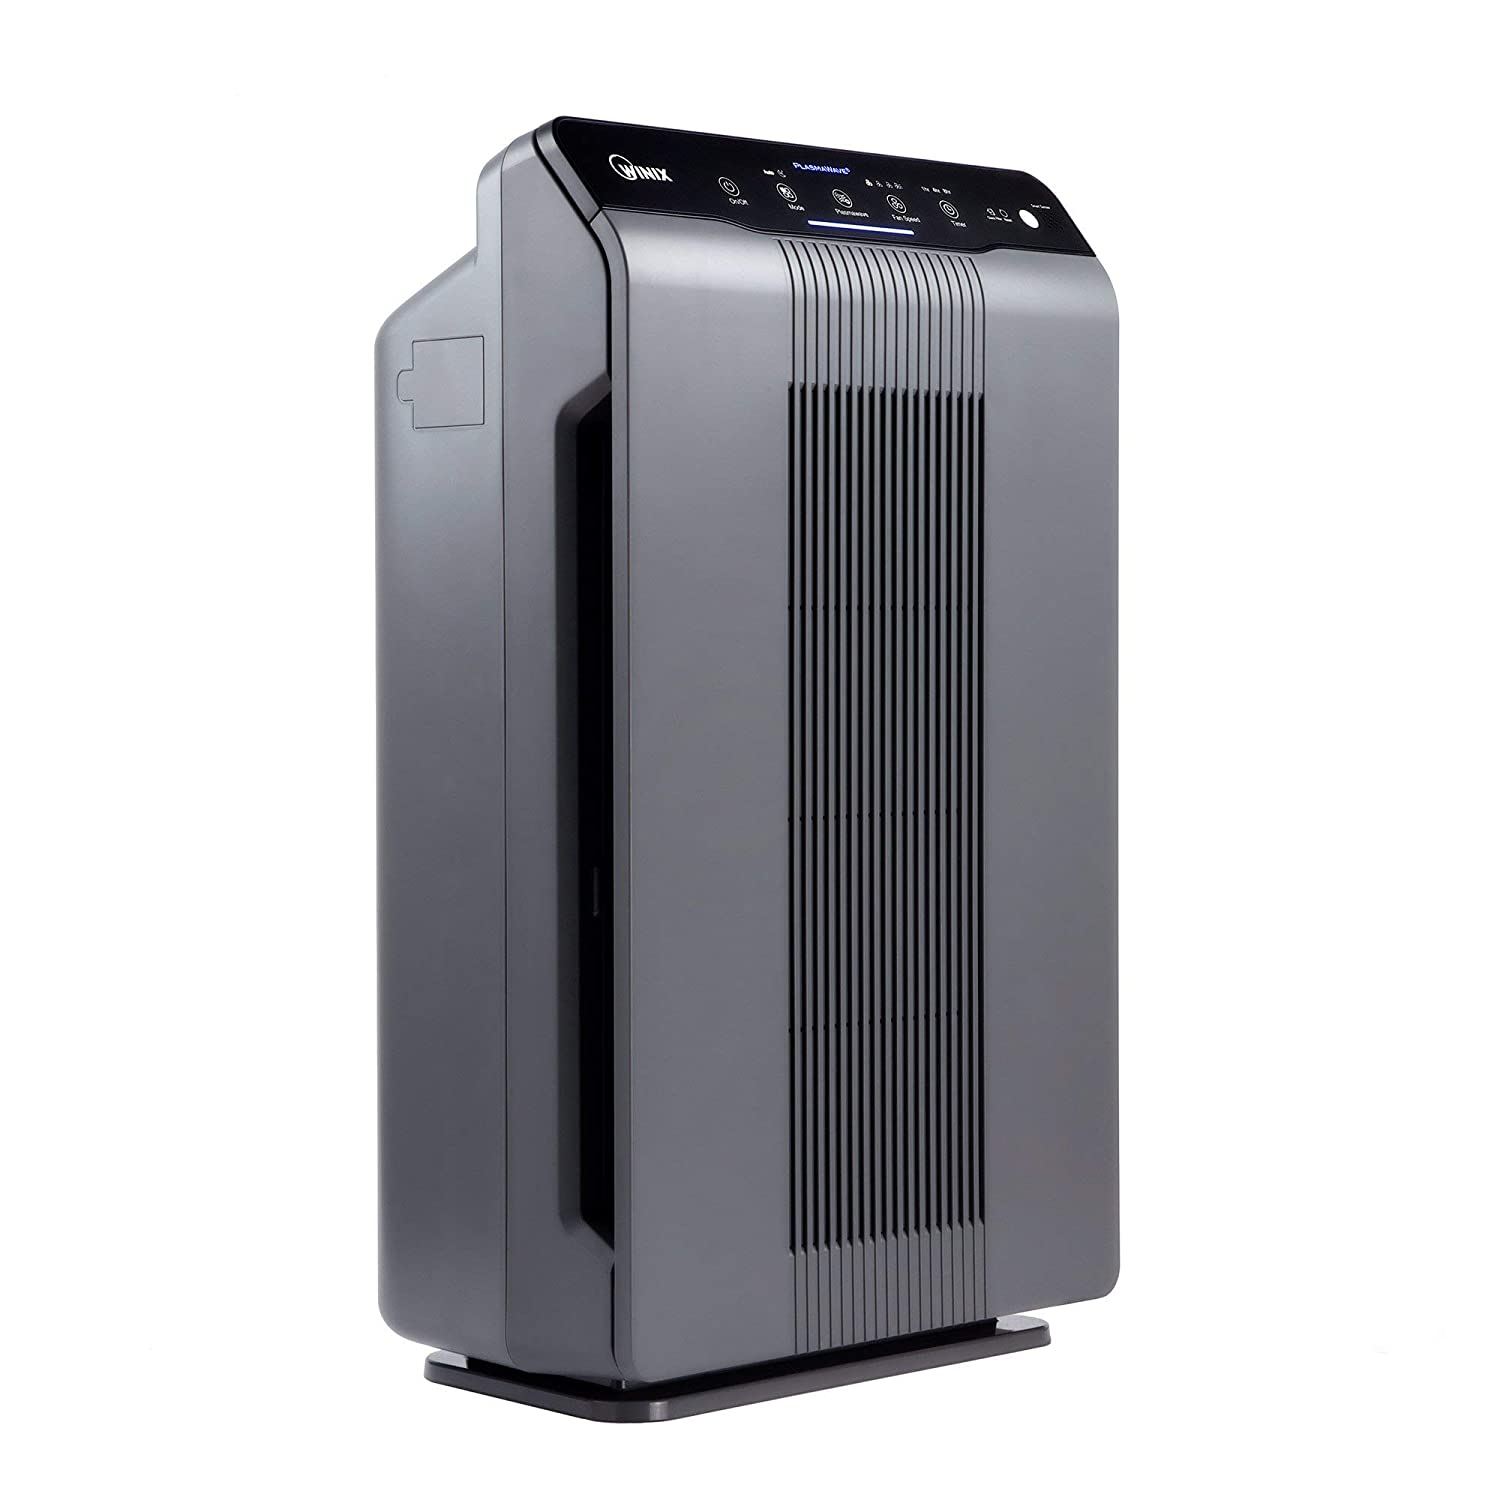 Winix 5300-2 Air Purifier with True HEPA, PlasmaWave and Odor Reducing Carbon Filter Renewed